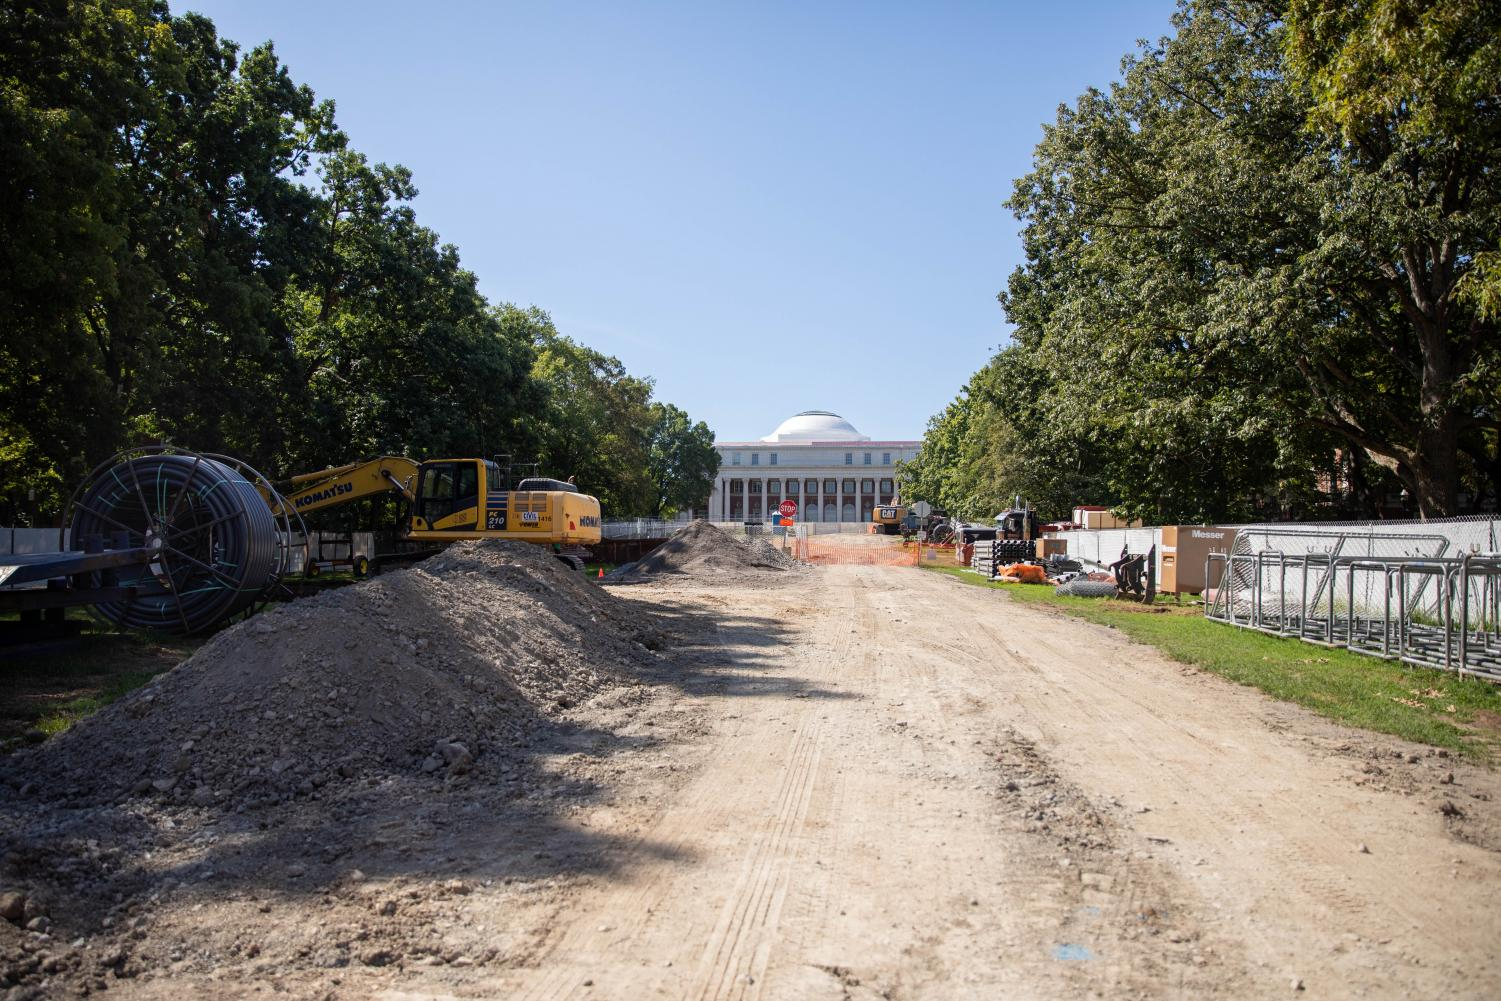 Construction on Peabody Lawn. (Photo by Emily Gonçalves)